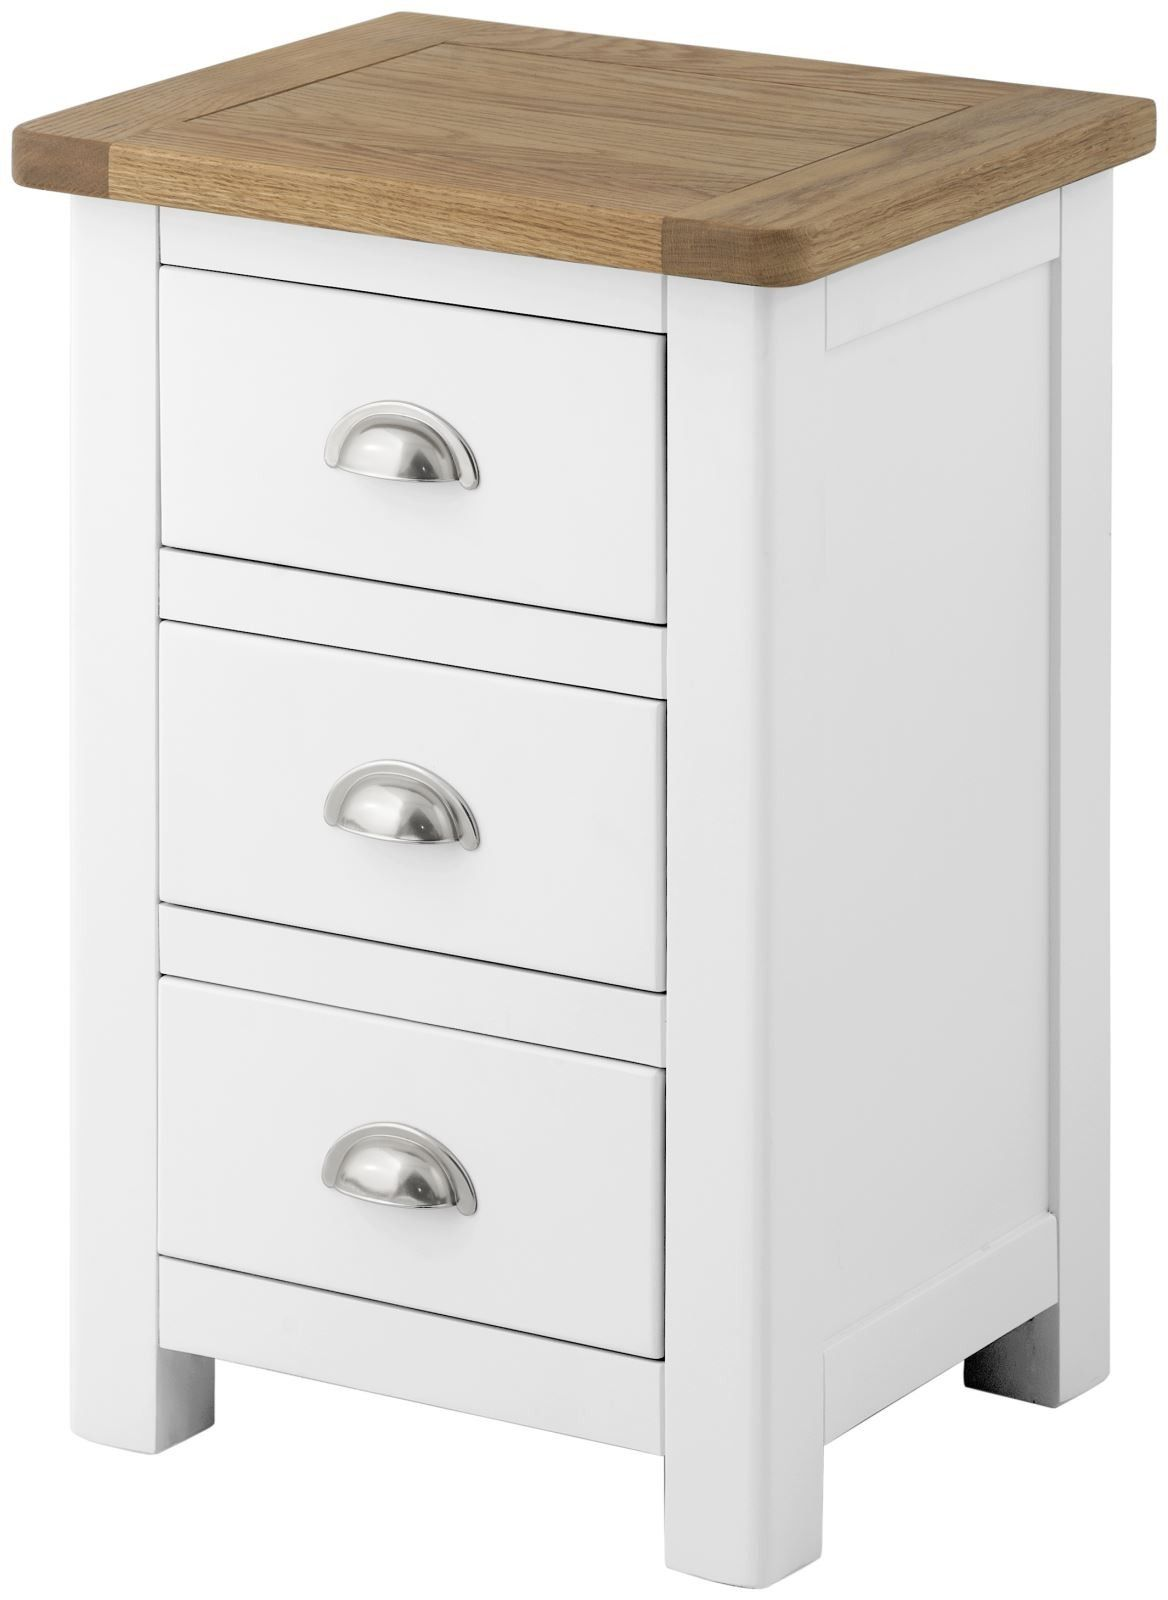 Stratton White Chest Bedside White Bedside Cabinets Bedside Cabinet Painted Bedside Tables